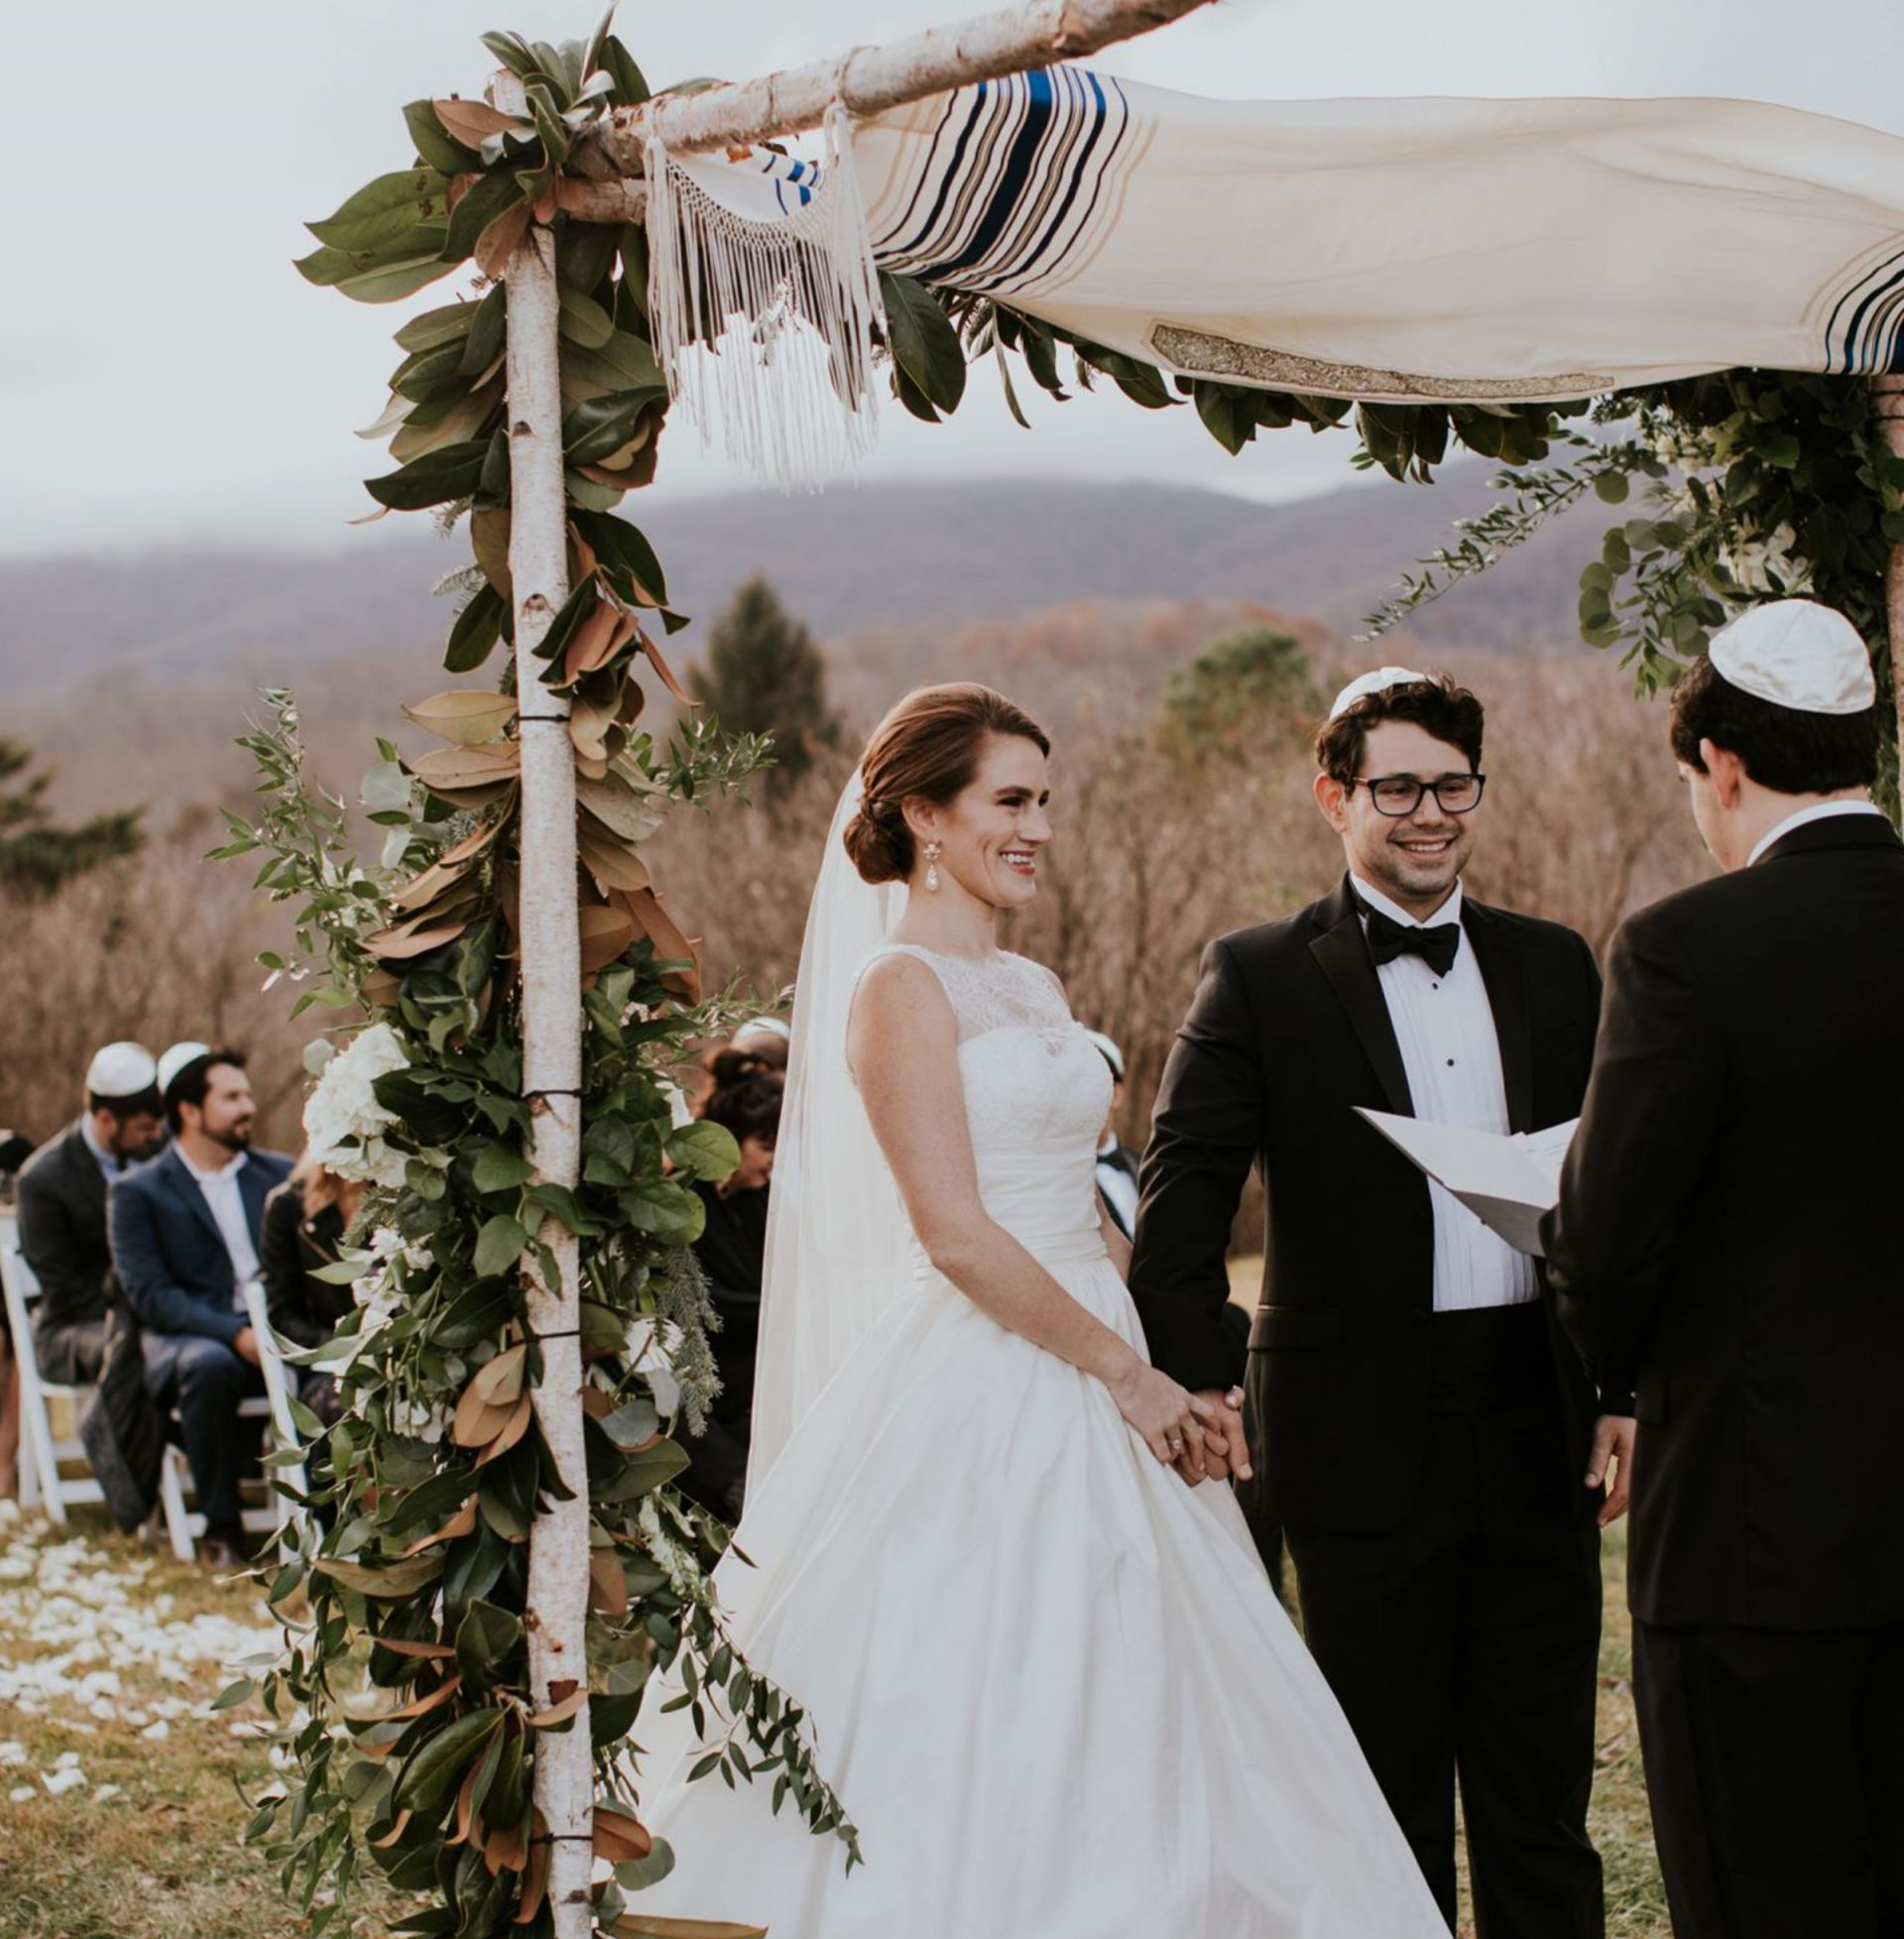 How We Planned Our Jewish Wedding Ceremony - Heather Bien